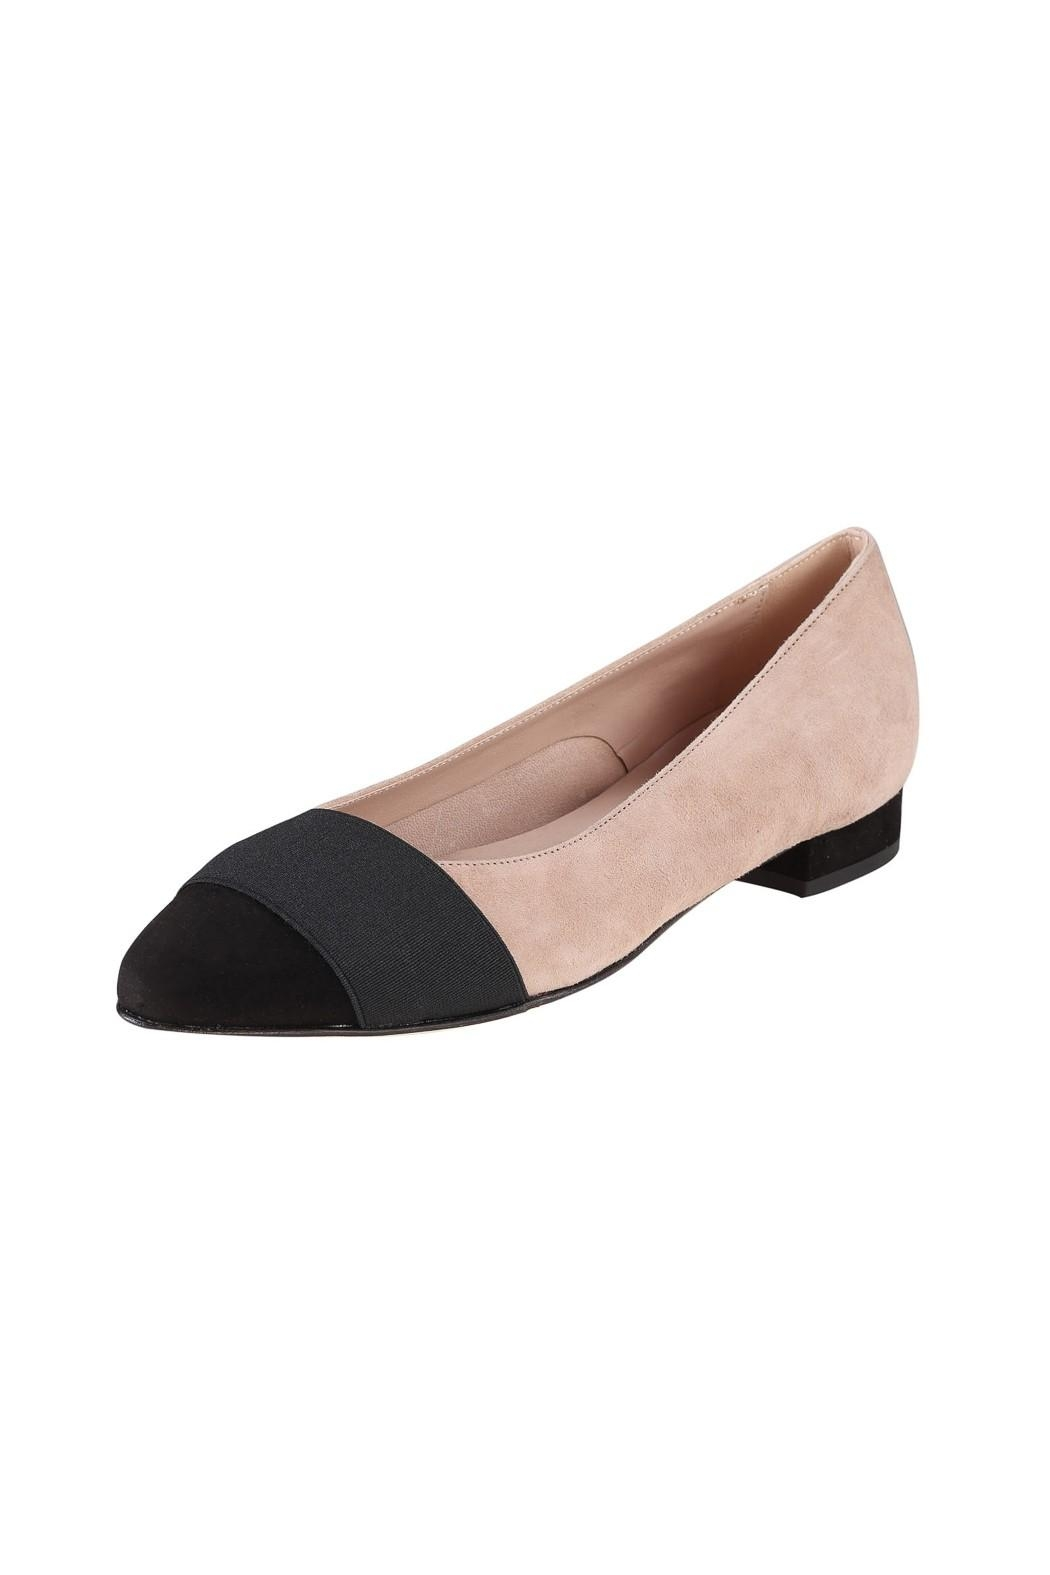 Pascucci Two-Tone Ballet Flats - Front Full Image